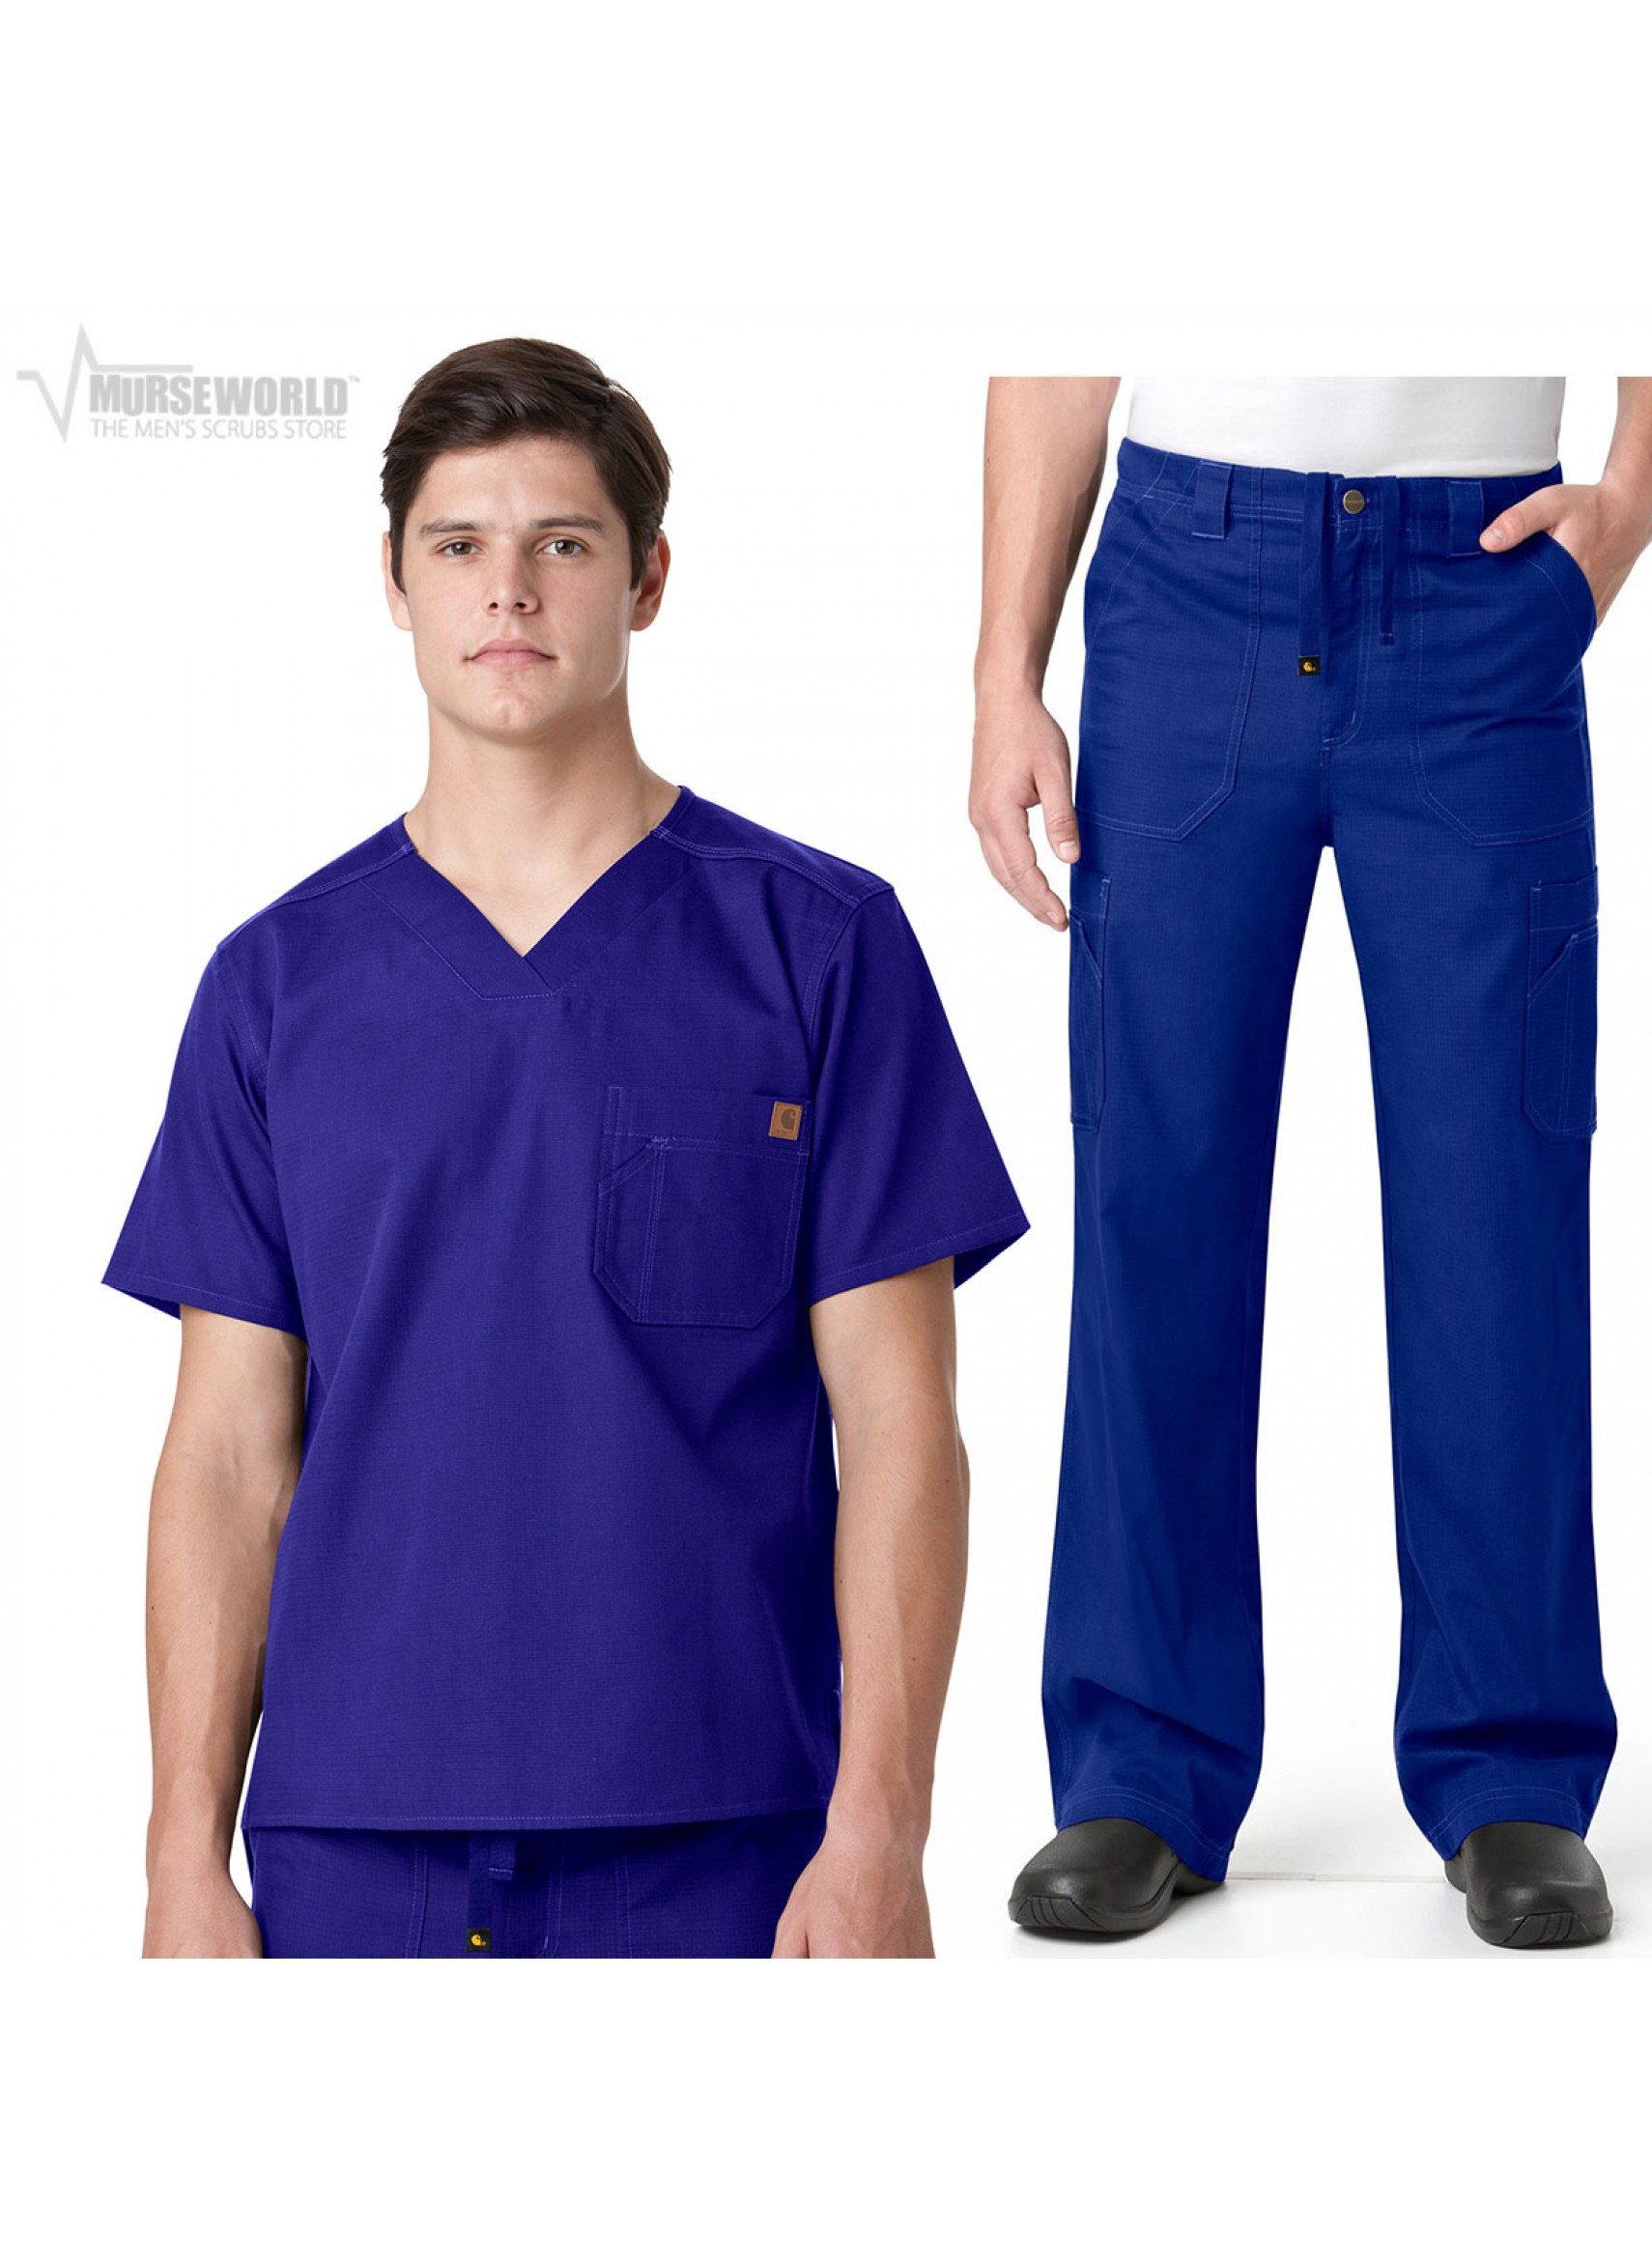 ab9fe4b49c3 20% off all Dickies Scrubs! Use code DICKIES20 at checkout! Carhartt Solid  Ripstop Utility Men's ...